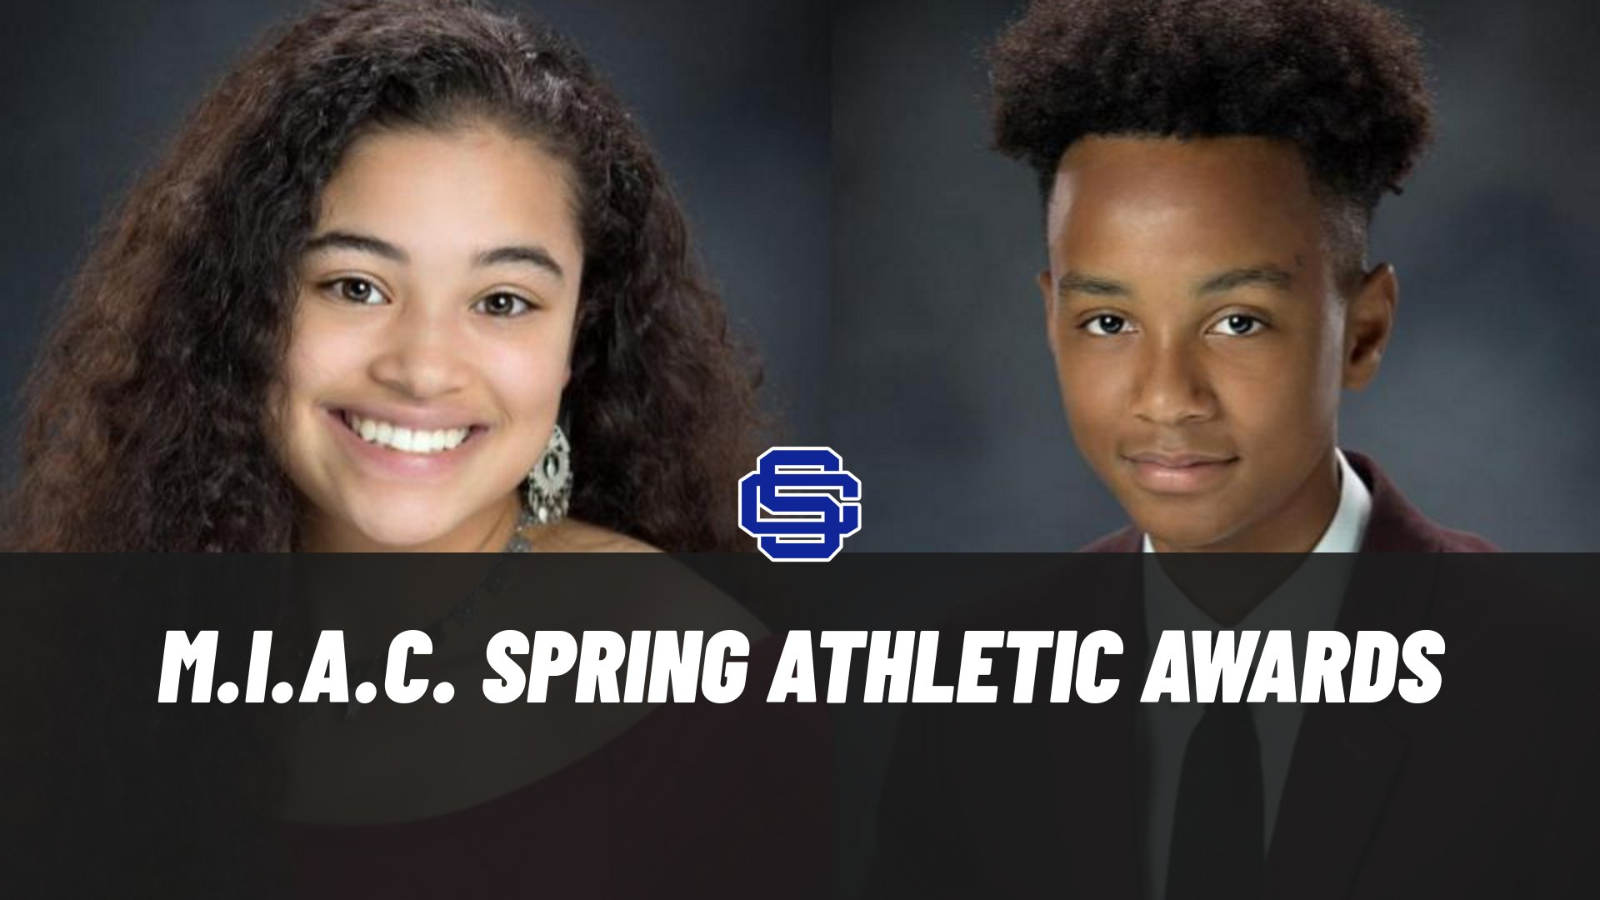 M.I.A.C. Spring Athletic Awards